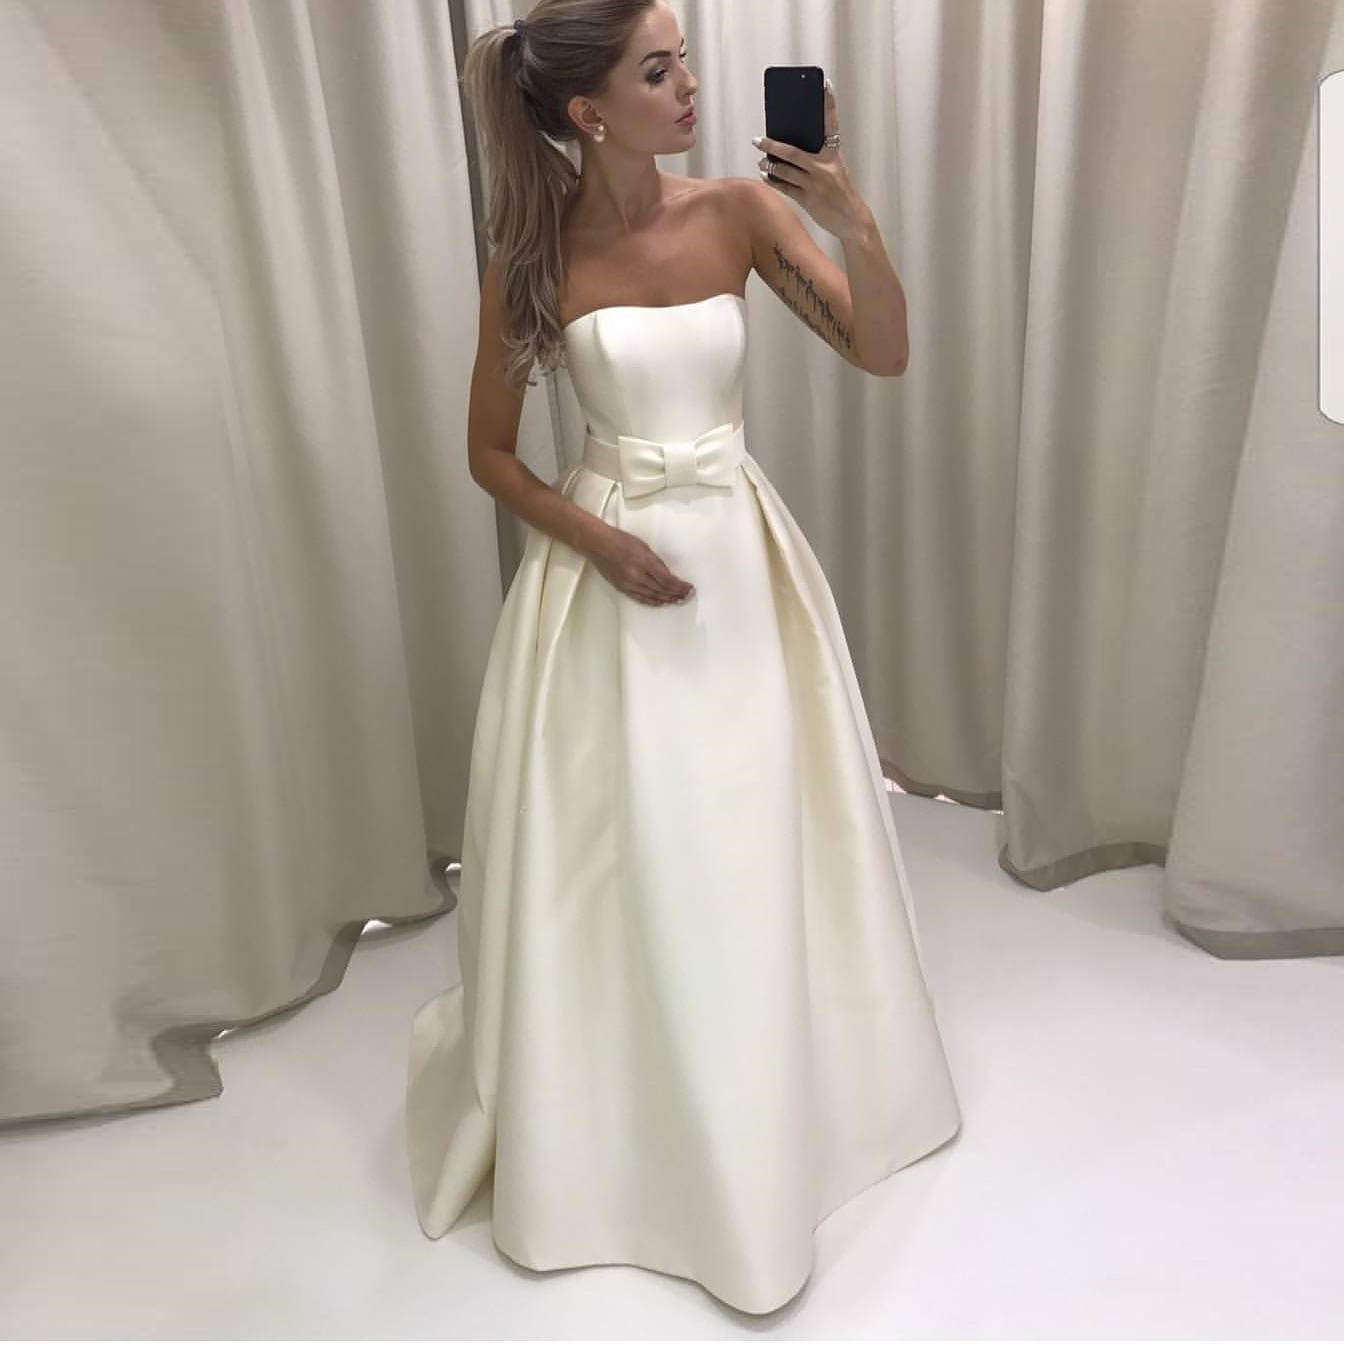 2018 New Arrival Ivory Strapless Satin A Line Prom Dress,Long Formal ...